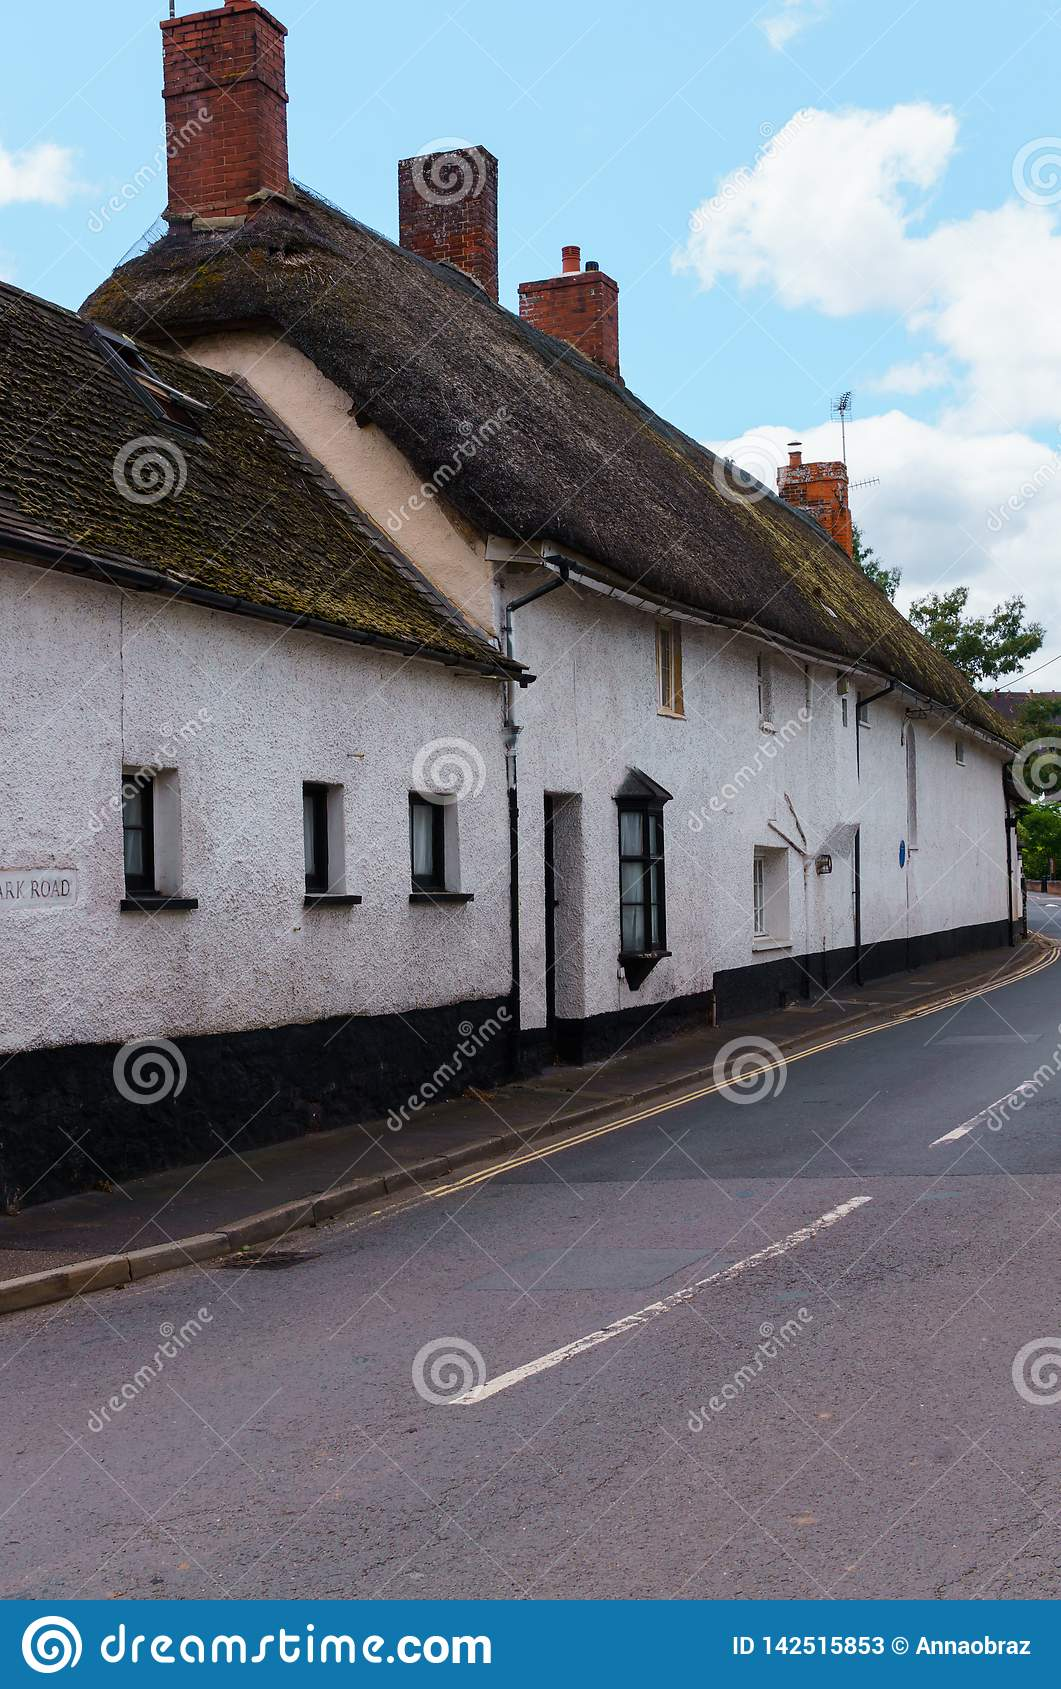 Old houses under thatched roof in the city of Crediton, Devon, United Kingdom June 2, 2018